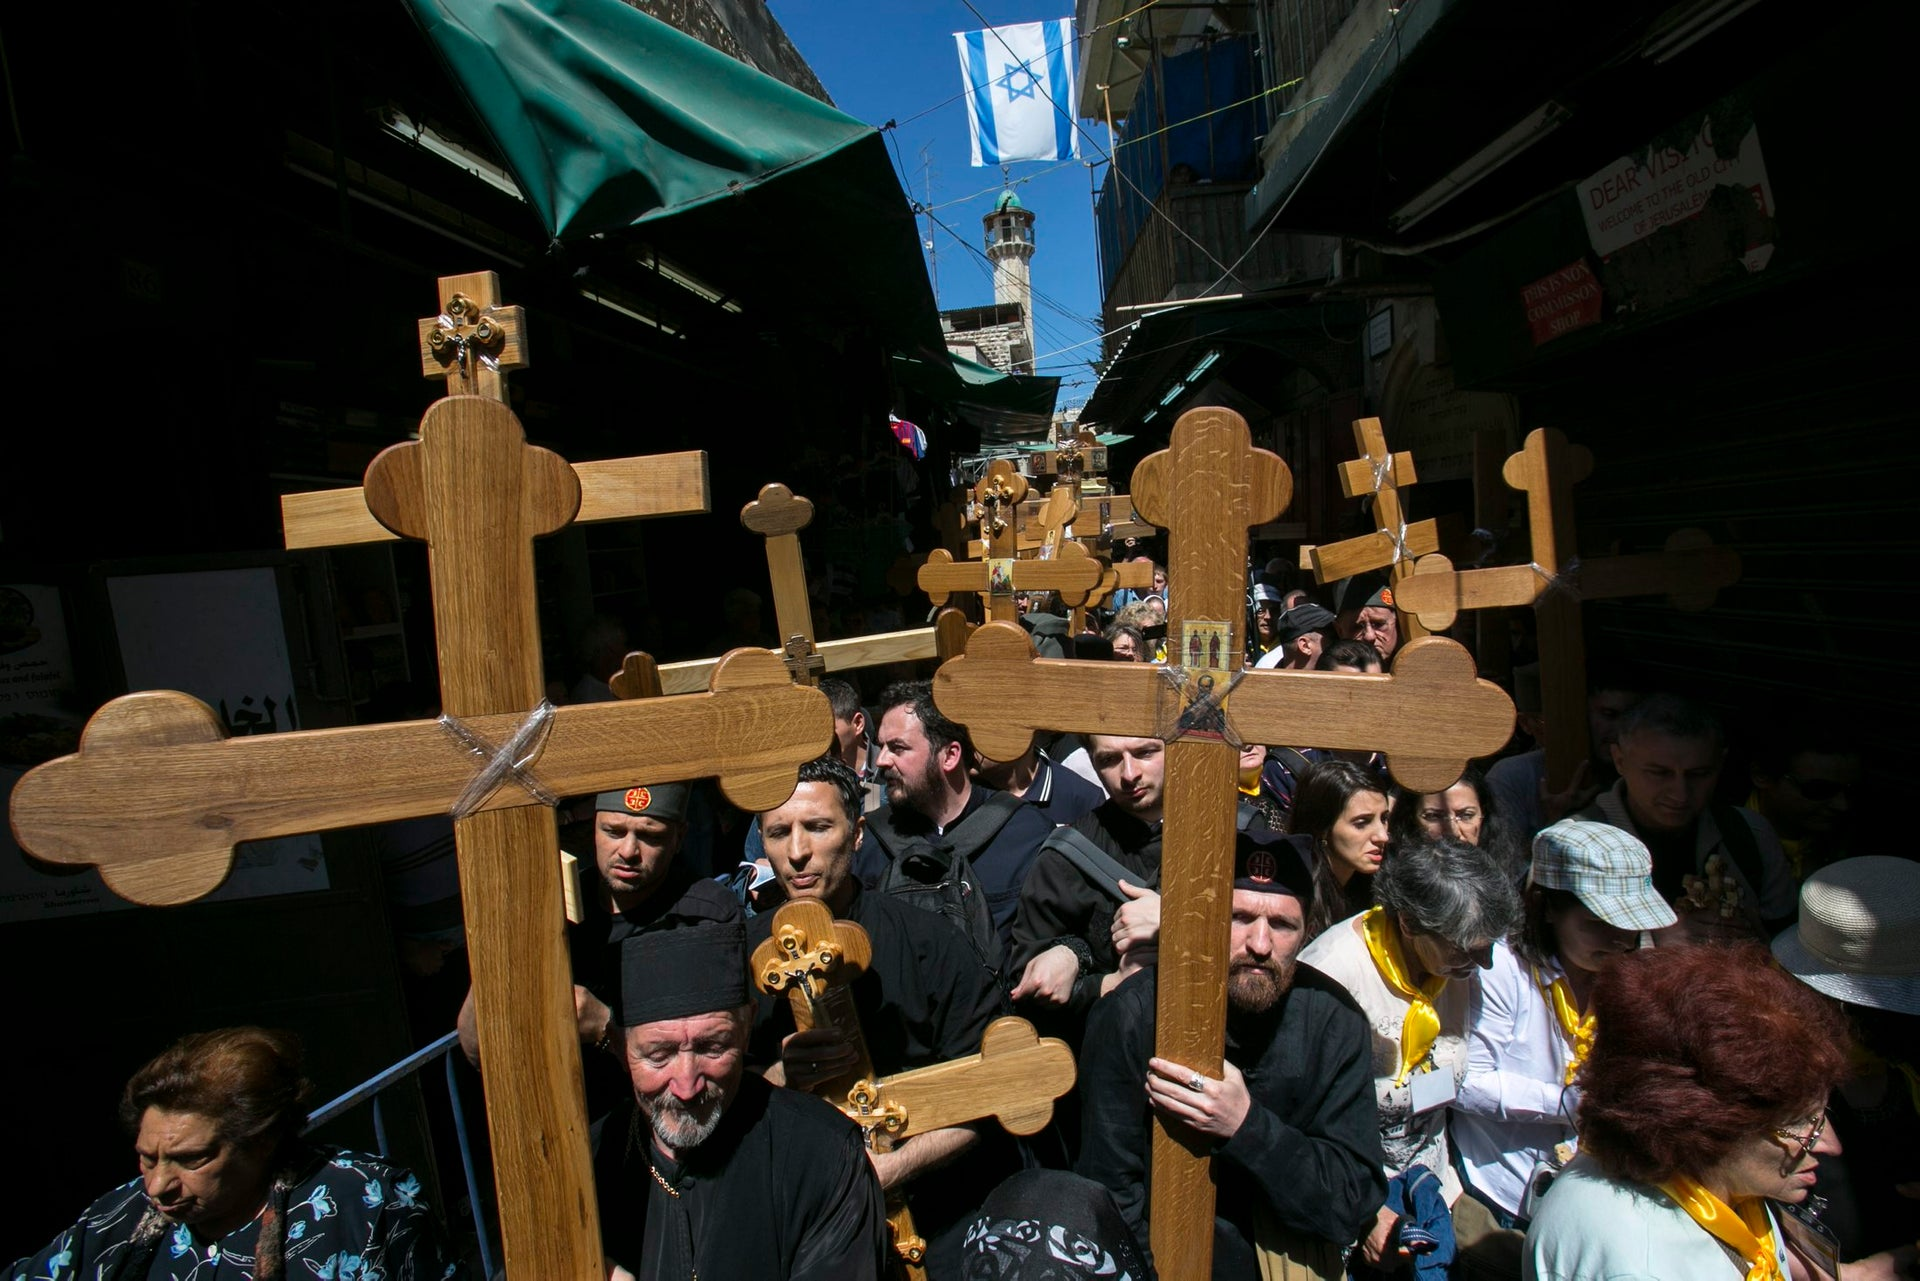 The Via Dolorosa: Mapped out centuries after the event.